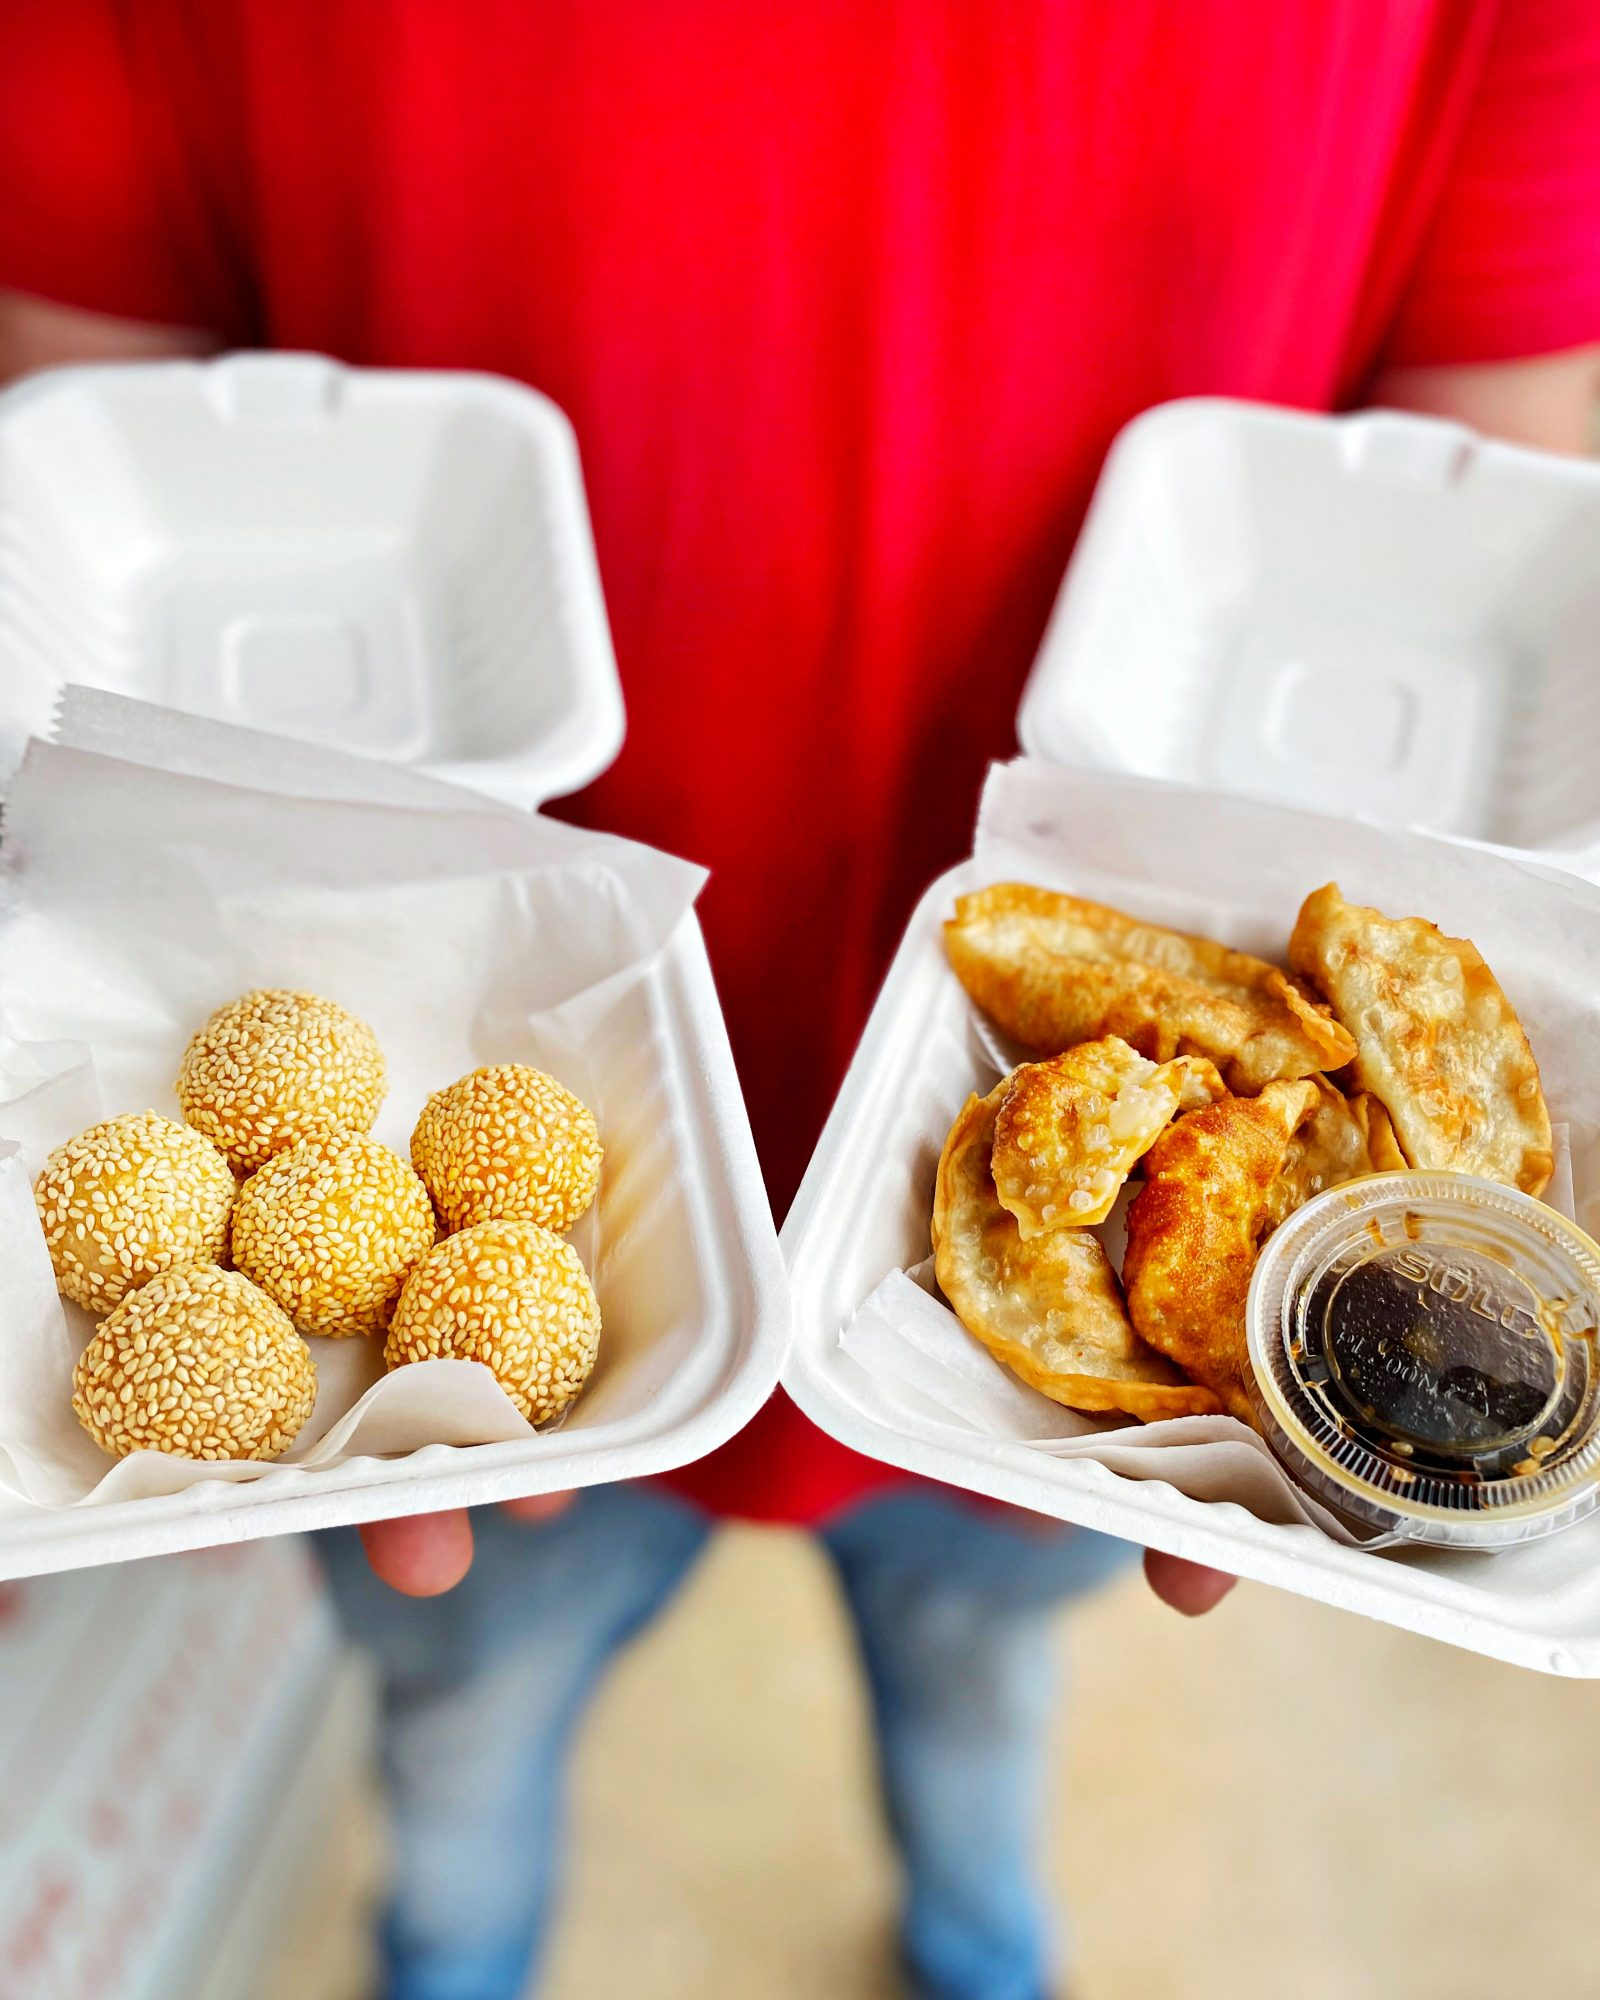 Sesame Balls and Potstickers from Tso Chinese Delivery